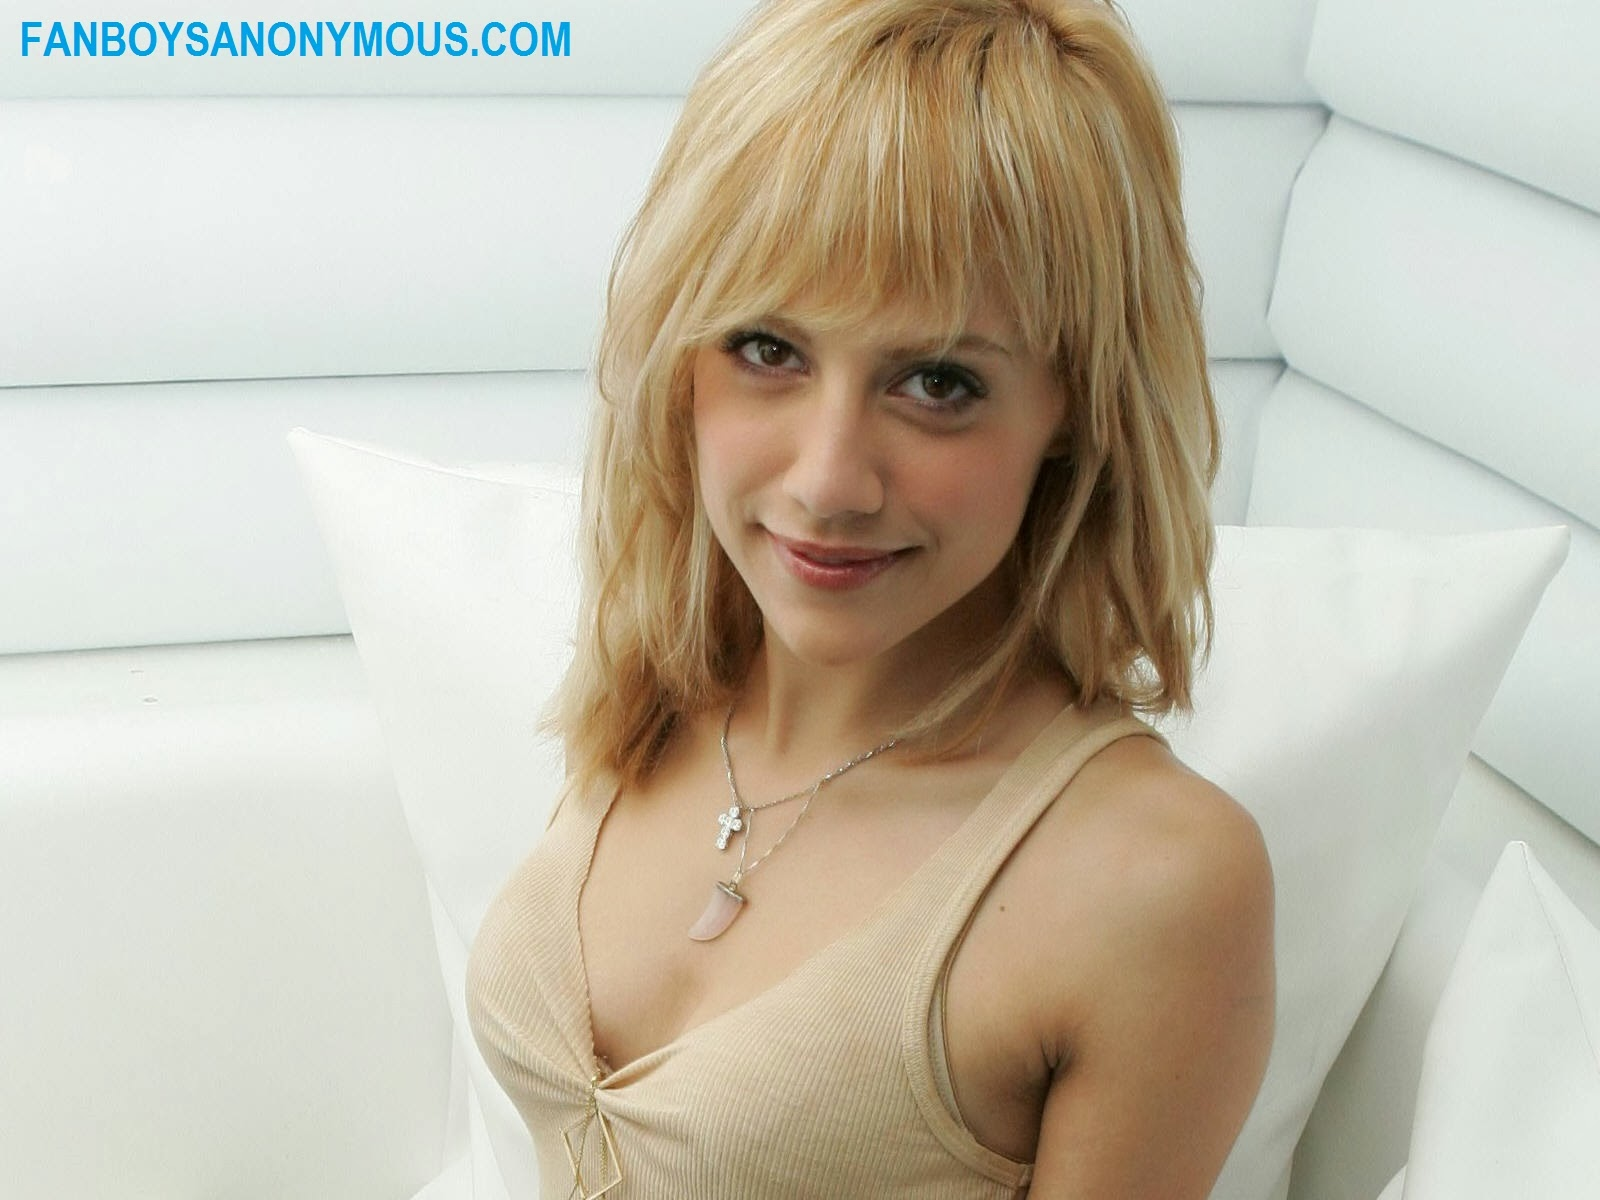 Late Actress Brittany Murphy Did Not Die of Natural Causes ...